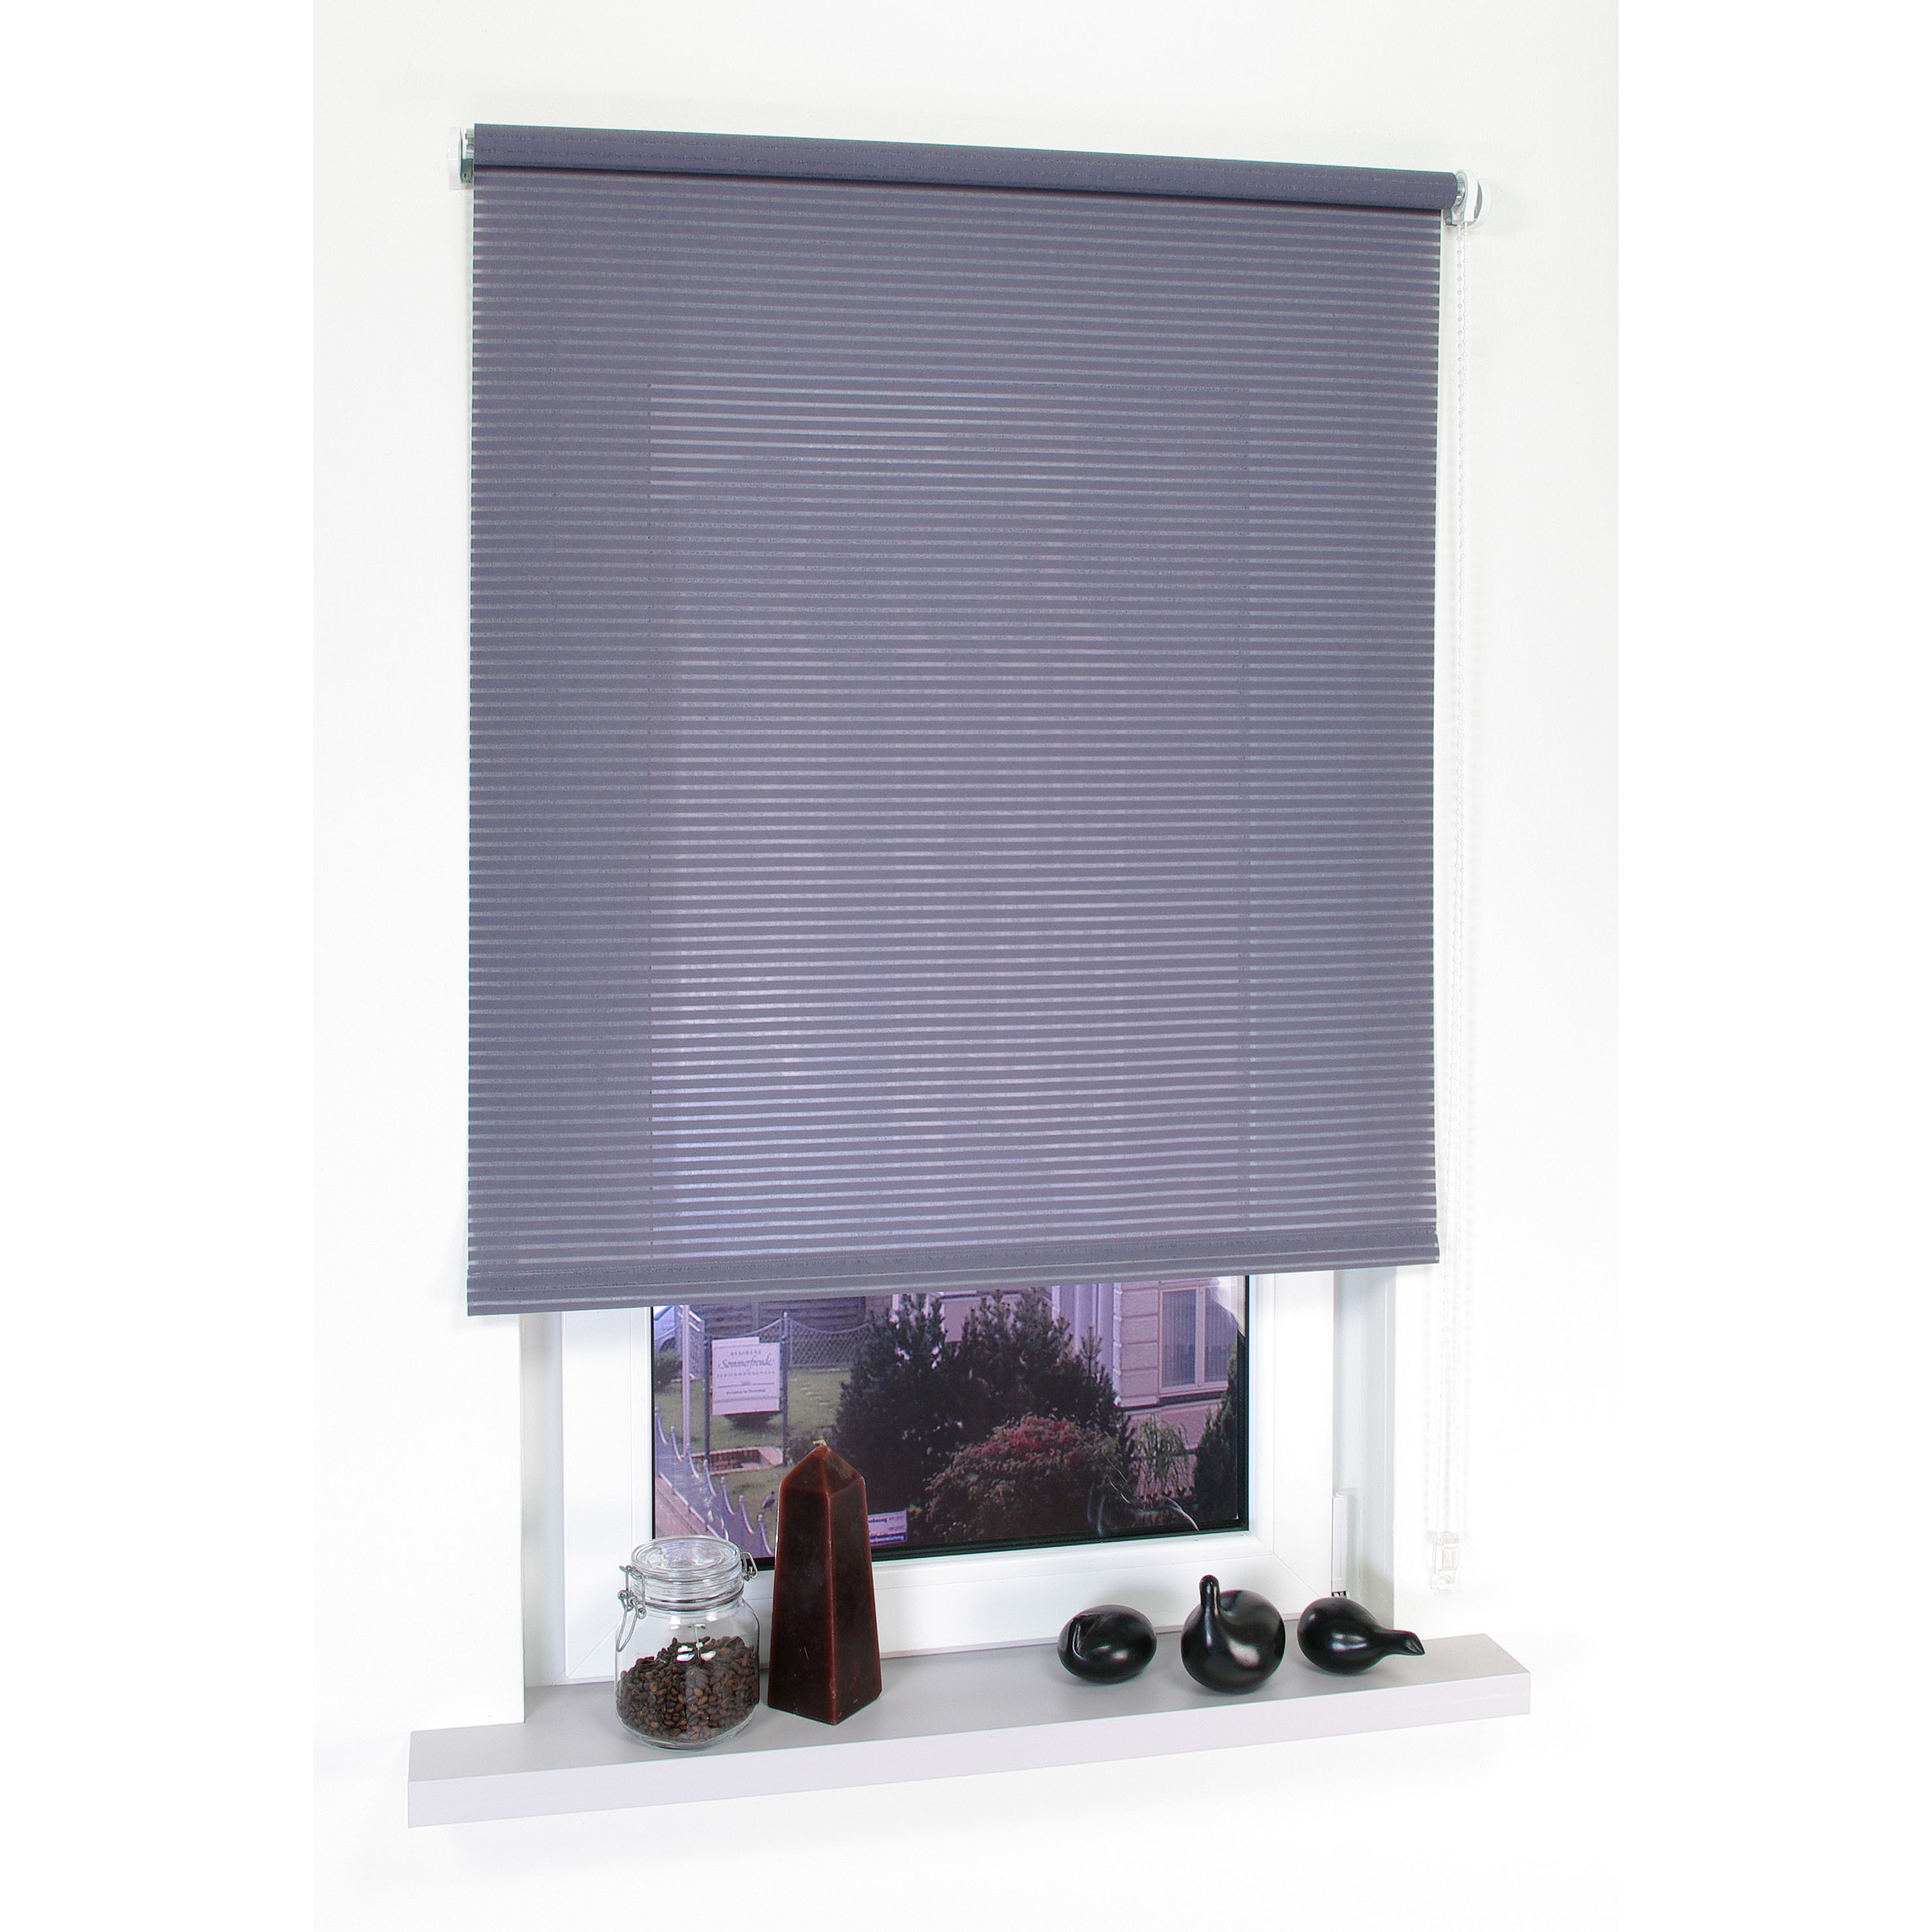 Menards Window Blinds | Menards Washing Machines | Wooden Blinds For Windows